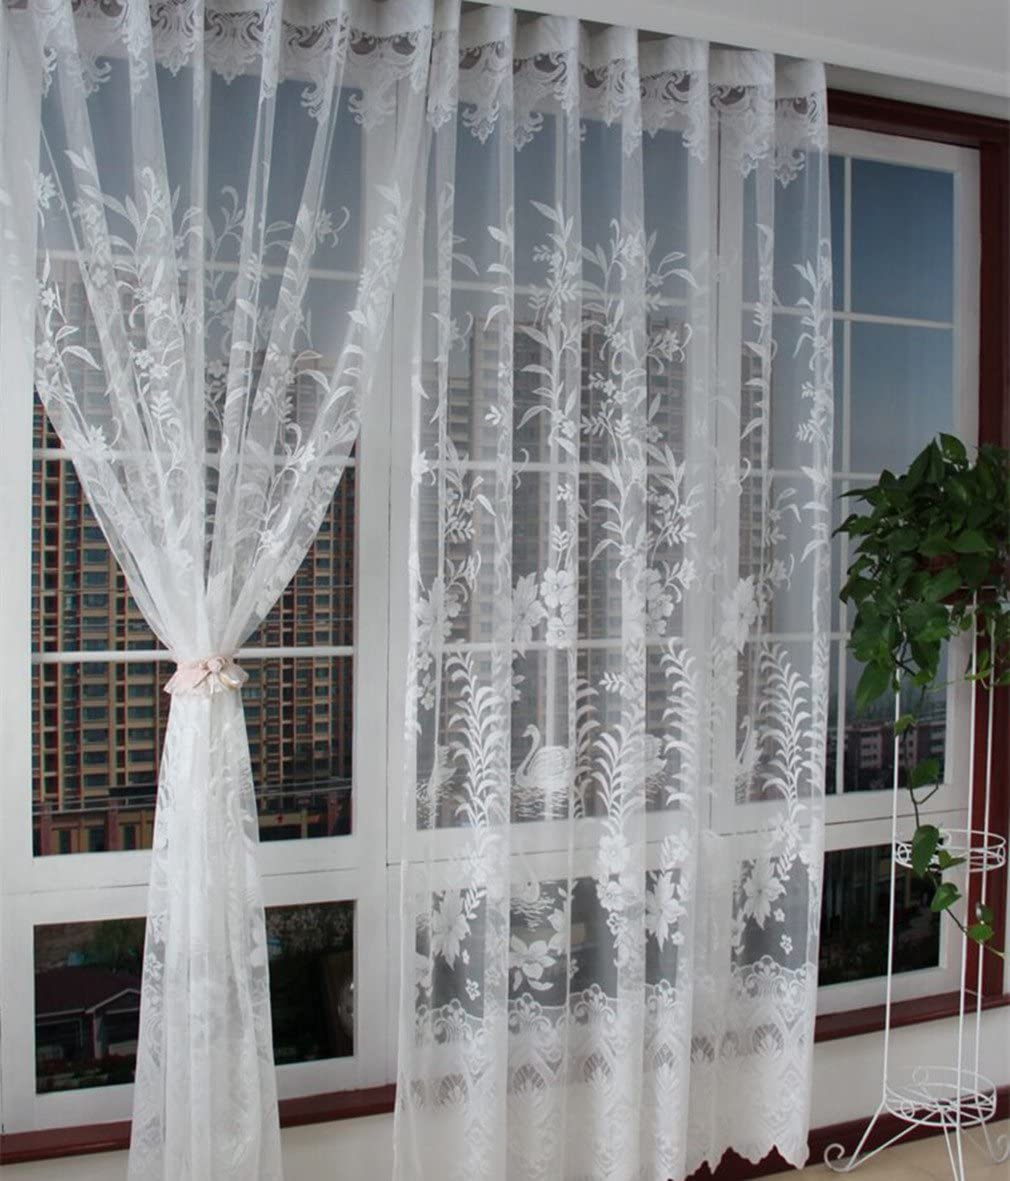 ZHH 1 Panel Elegant White Lace Crochet Sheer Swan and Jacquard Patterns Tulle Curtains for Windows 118 by 94-Inch, White